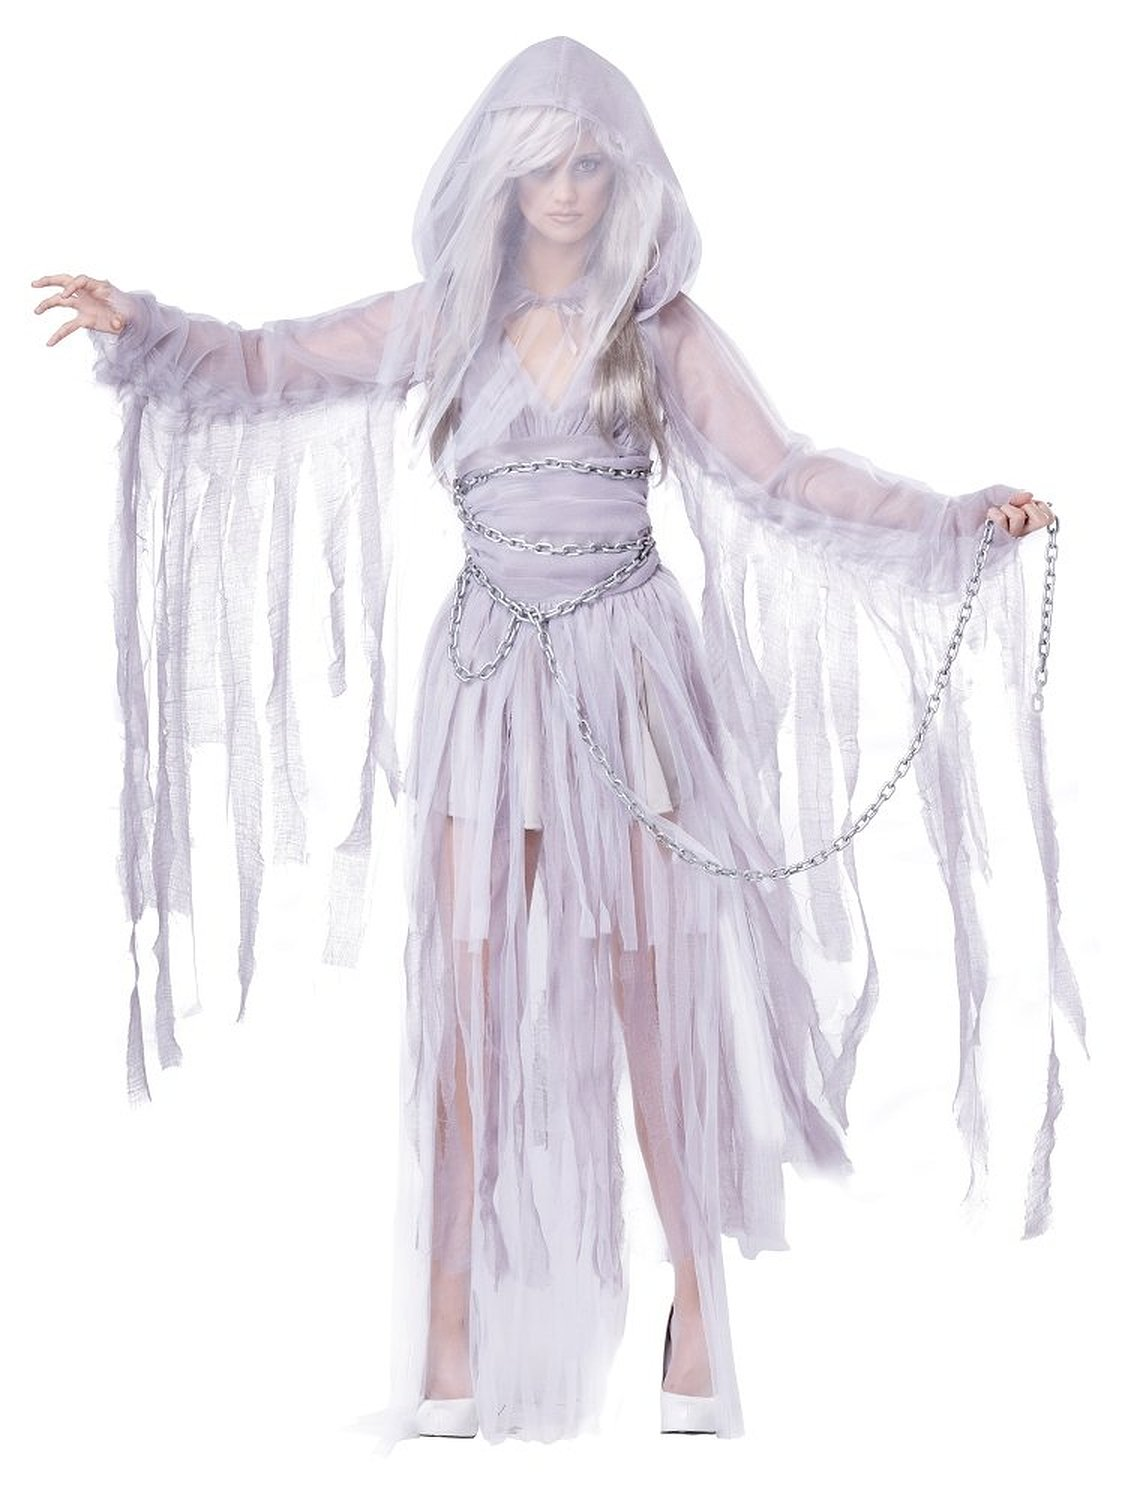 Women's Haunting Ghost Spirit Costume